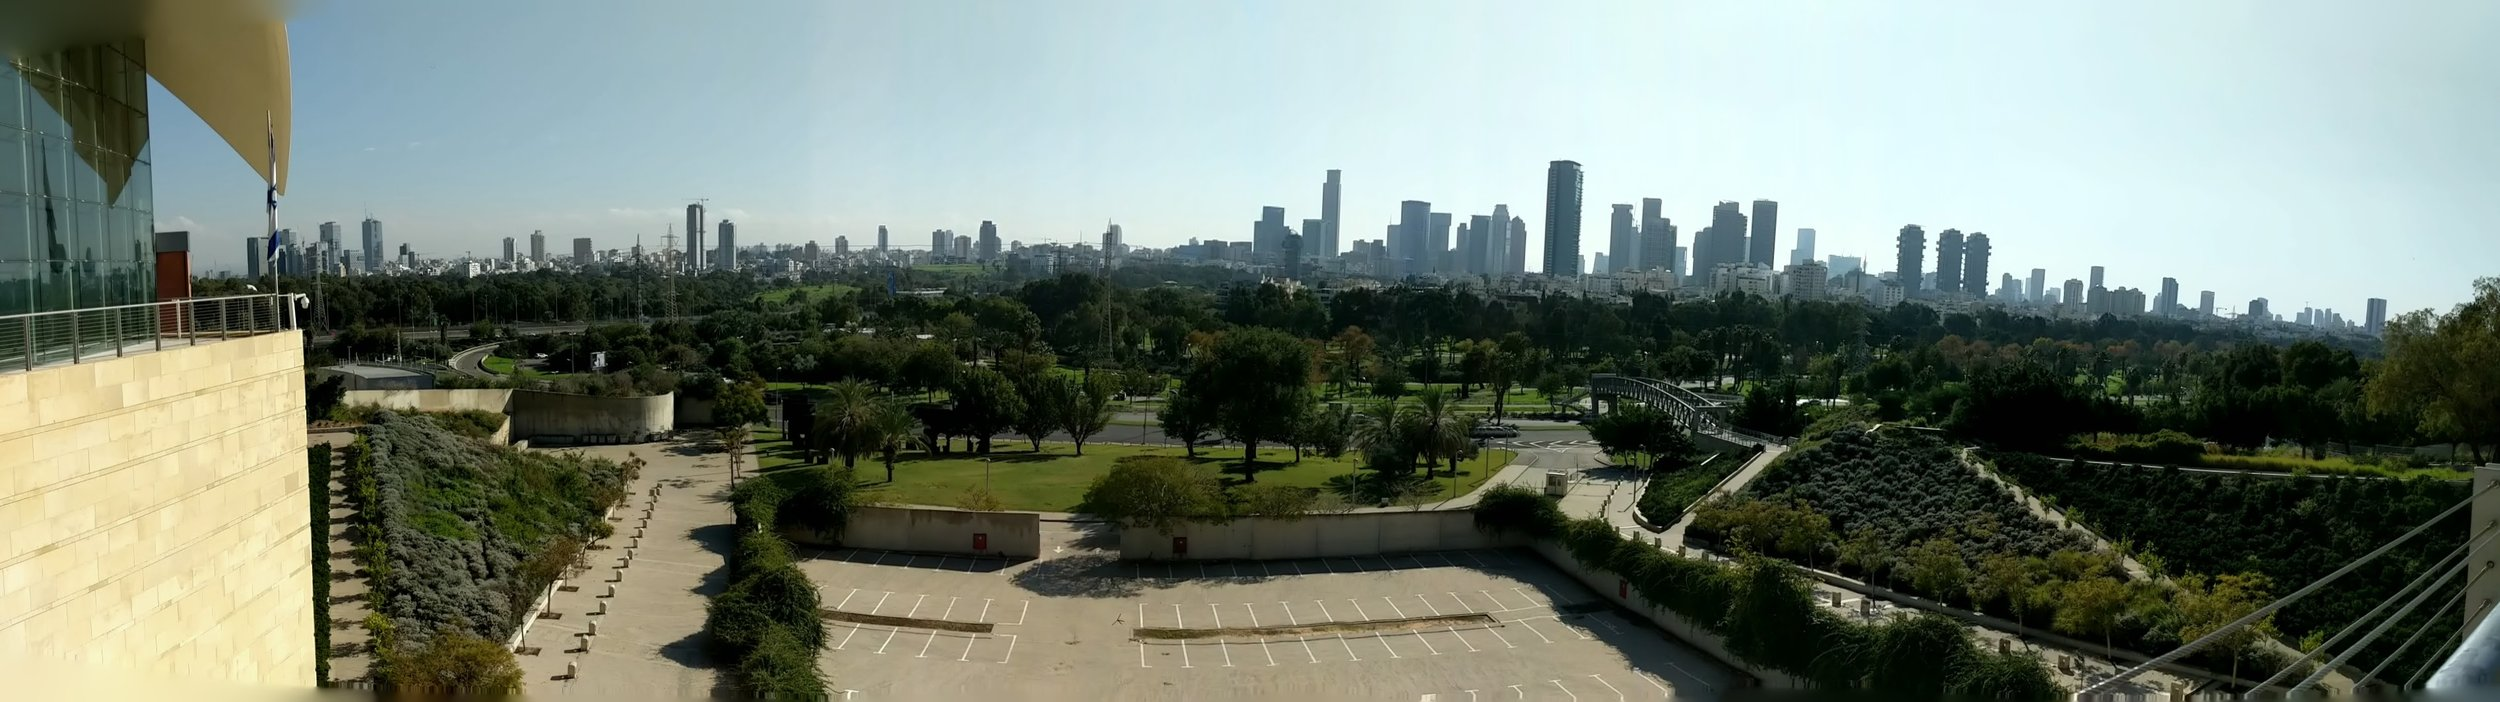 A small view of the TLV Skyline